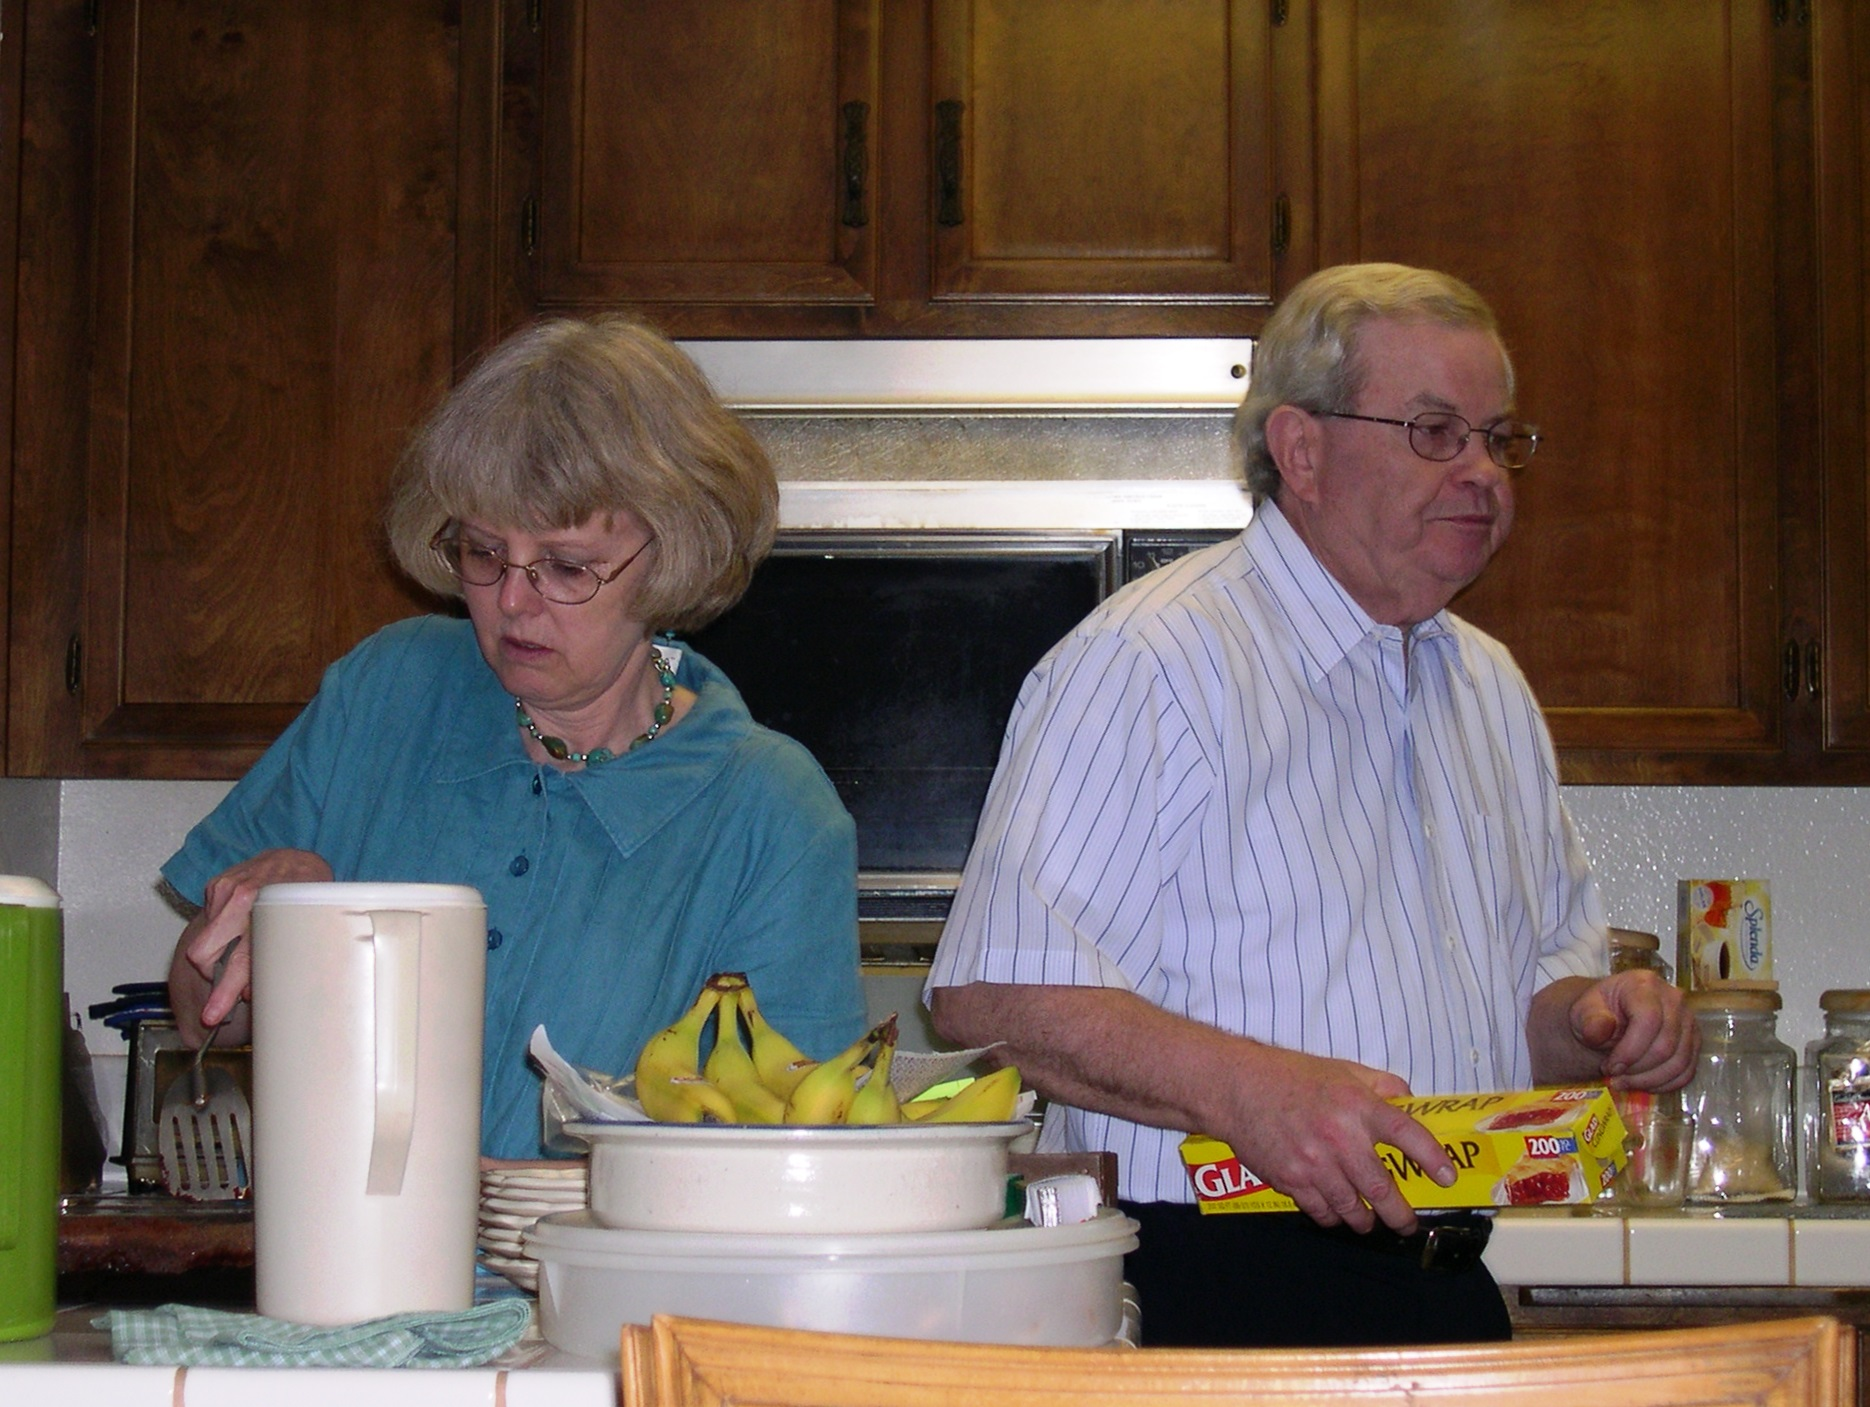 Janet and C. W. busy in the kitchen, June 2004